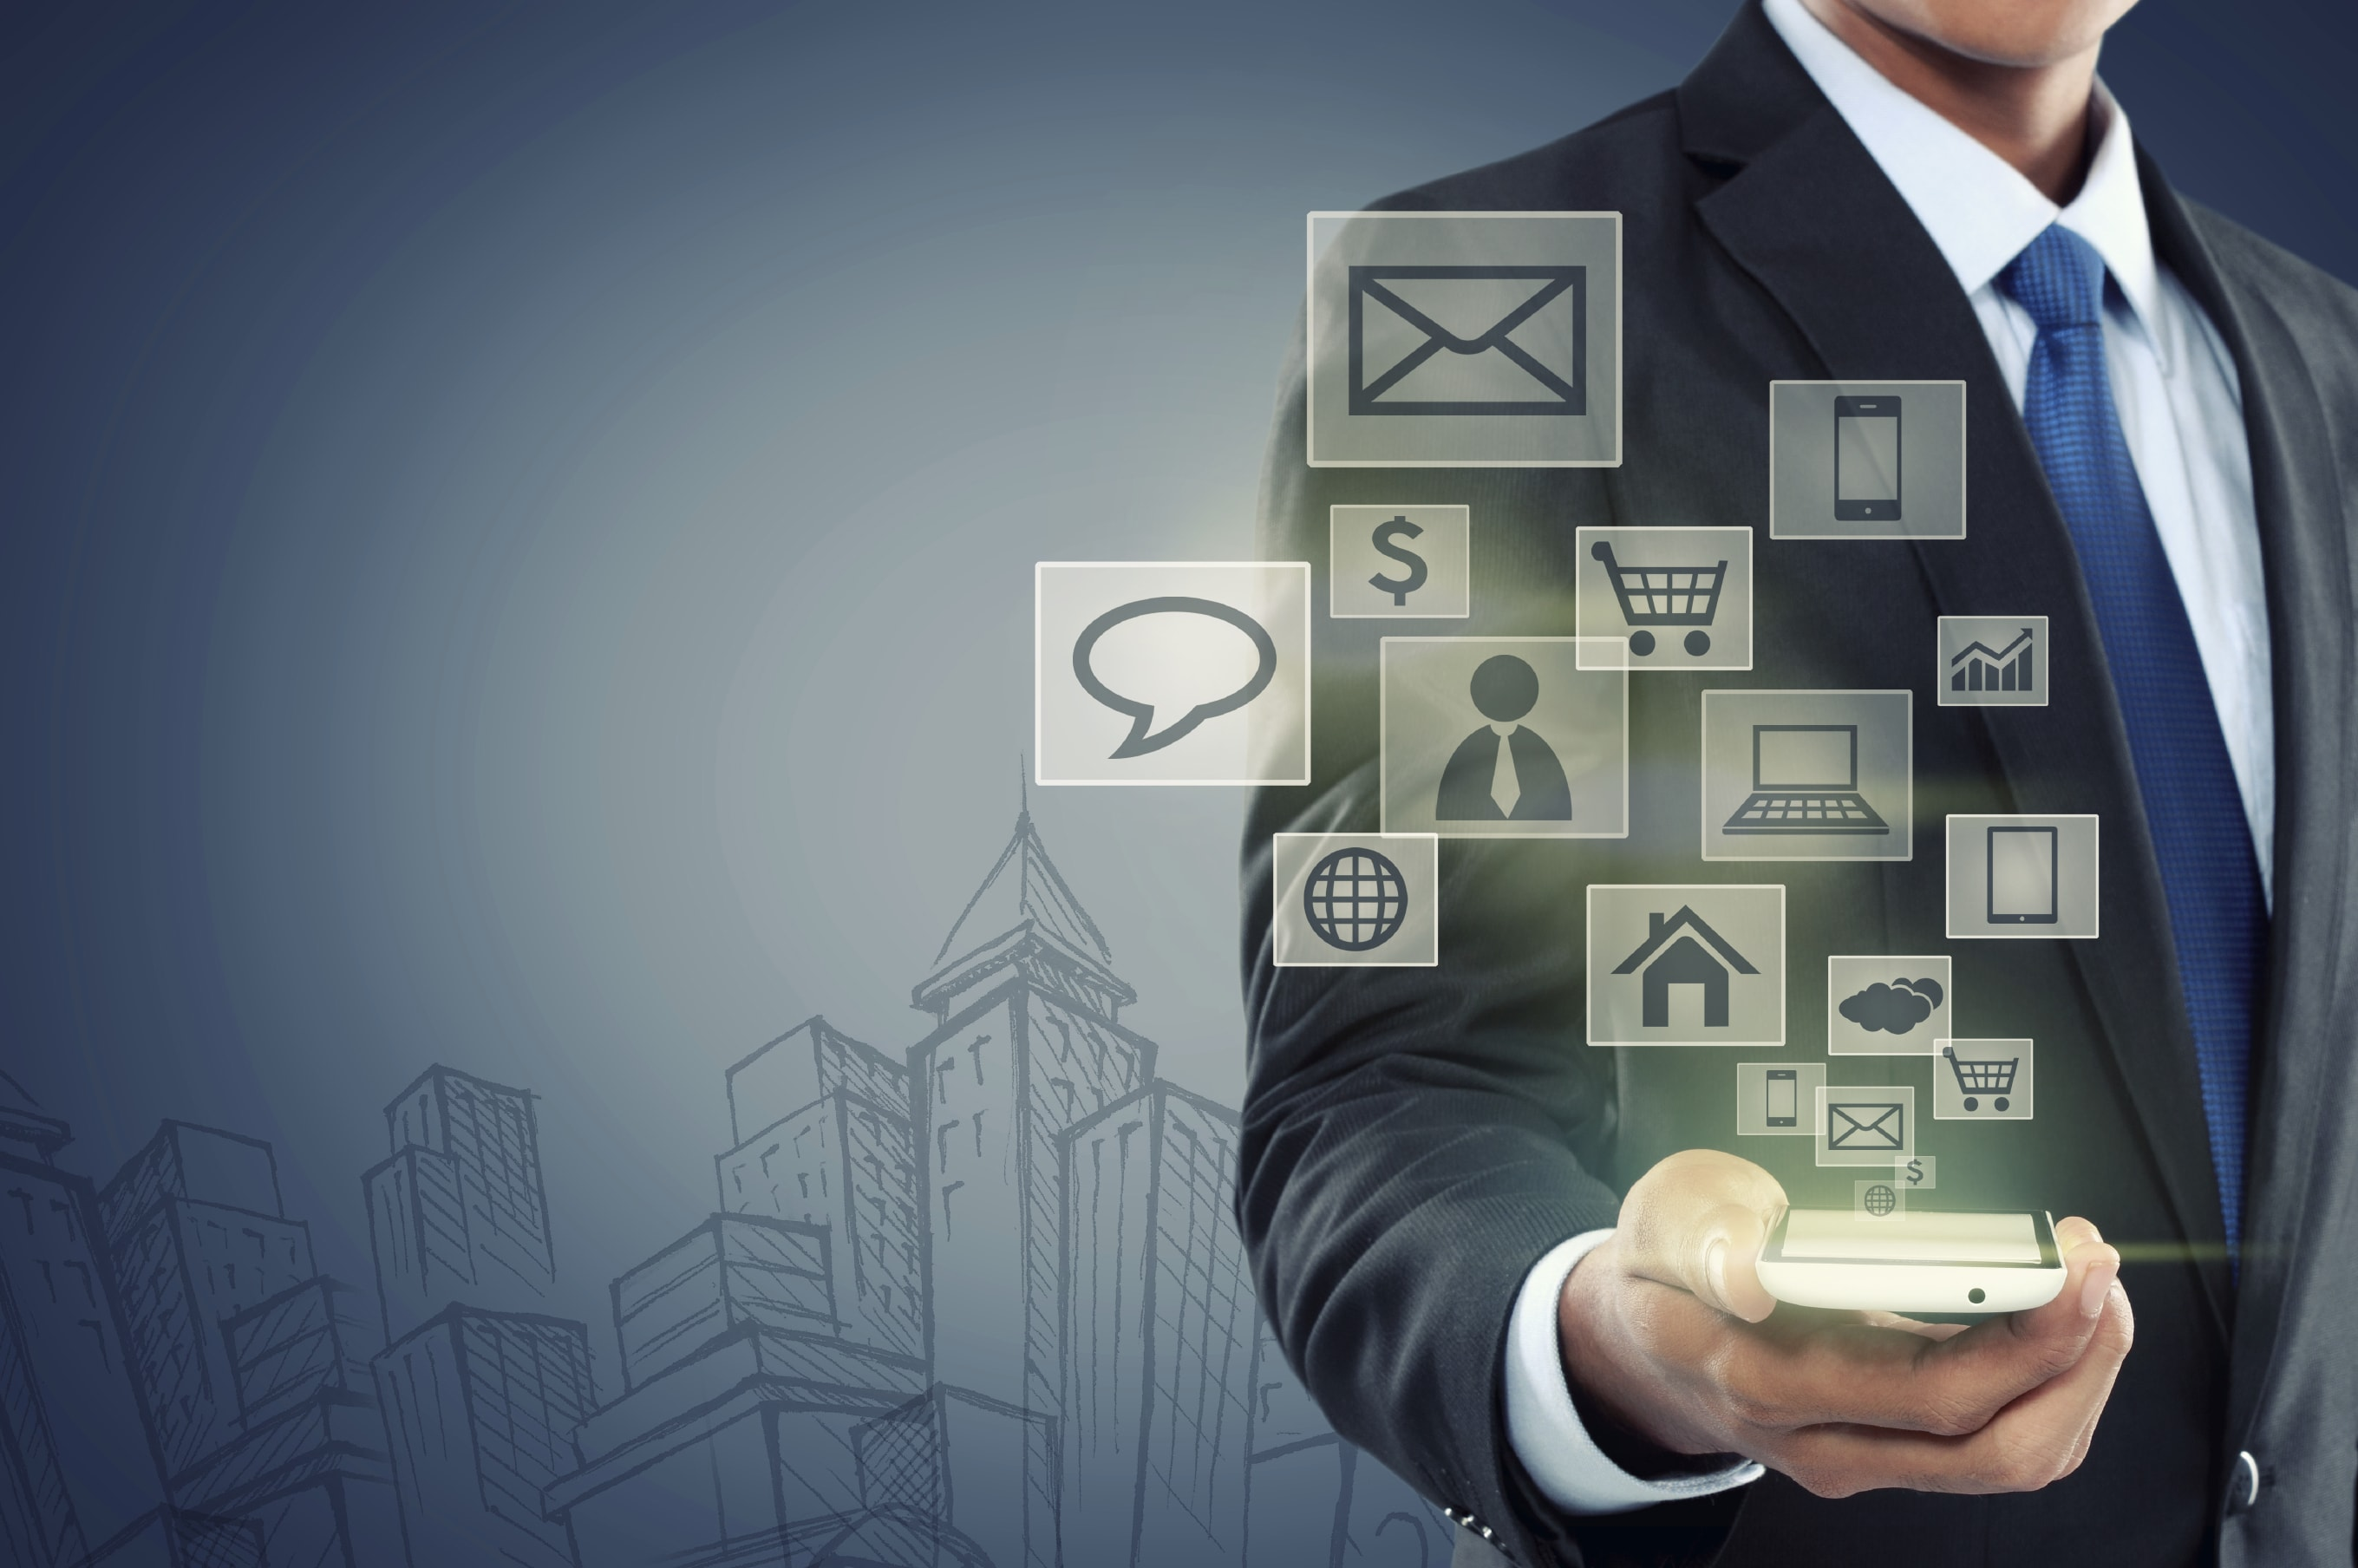 Combination of Social Media, Mobility, Analytics and Cloud provides business advantage through mobile application